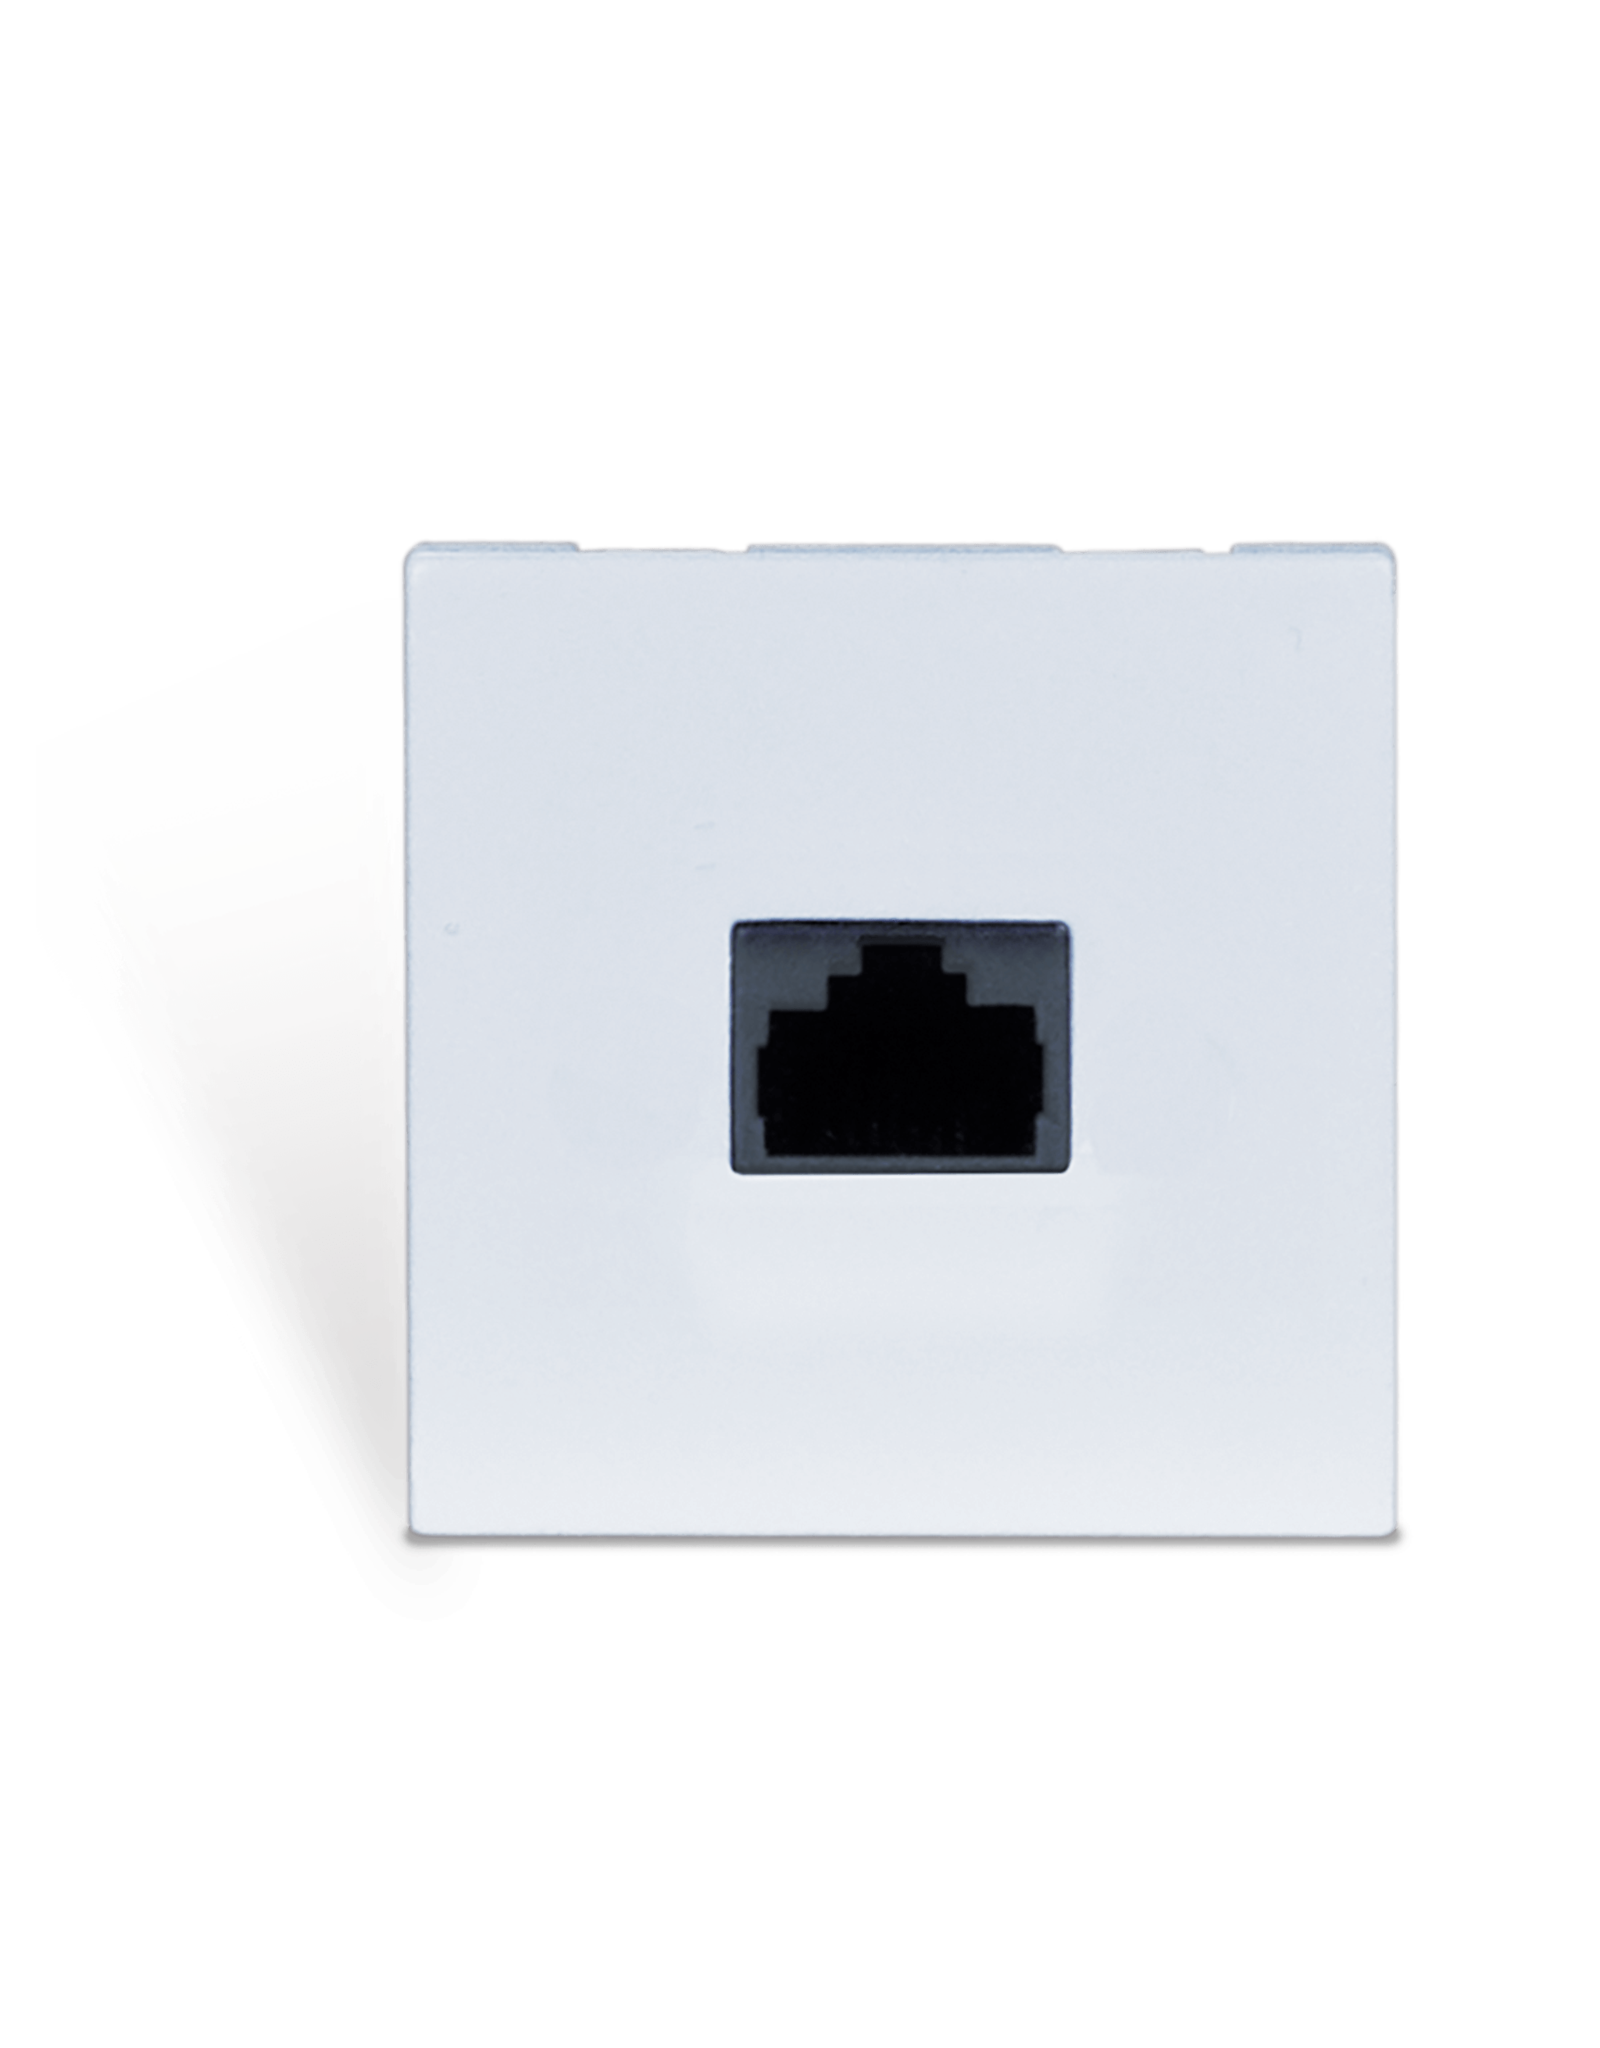 Audac Connection plate - rj45 - bticino White version